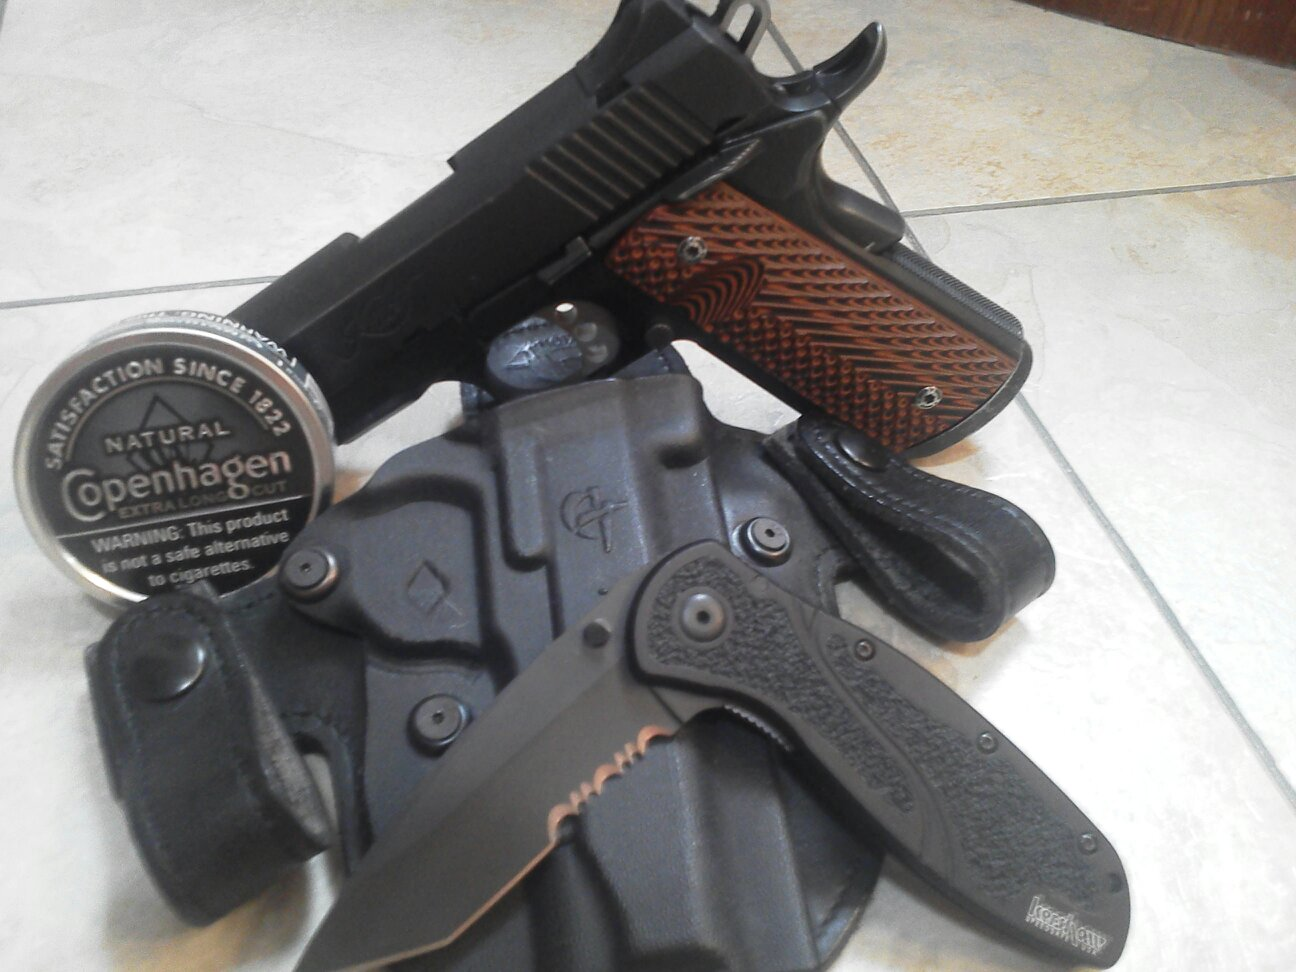 What do you carry everyday and how? Pictures and Discriptions only please!-uploadfromtaptalk1326110406630.jpg